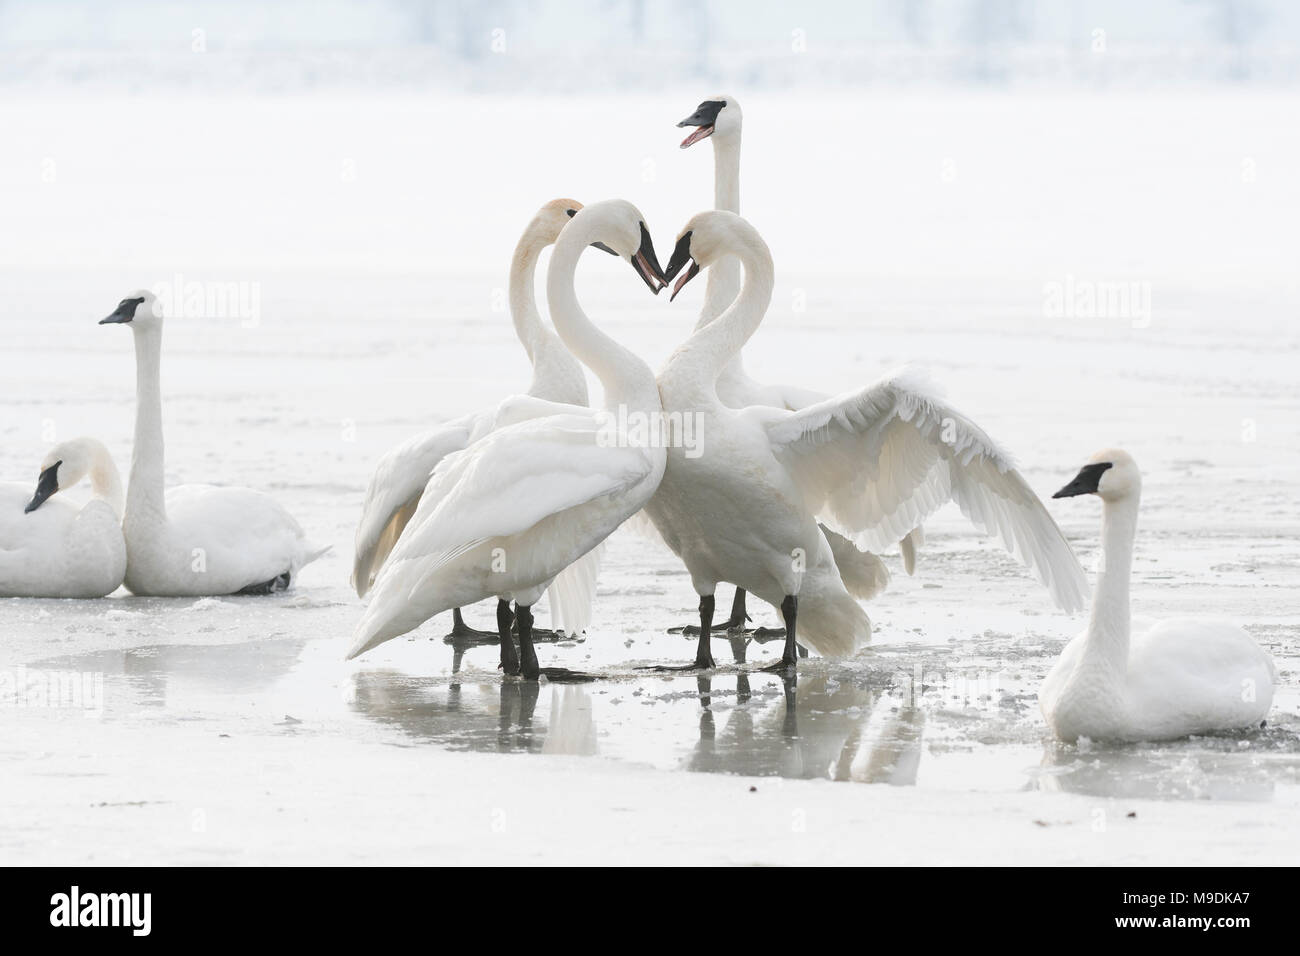 Trumpeter swans (Cygnus buccinator), territorial posturing, St. Croix River, WI, USA, mid January, by Dominique Braud/Dembinsky Photo Assoc - Stock Image